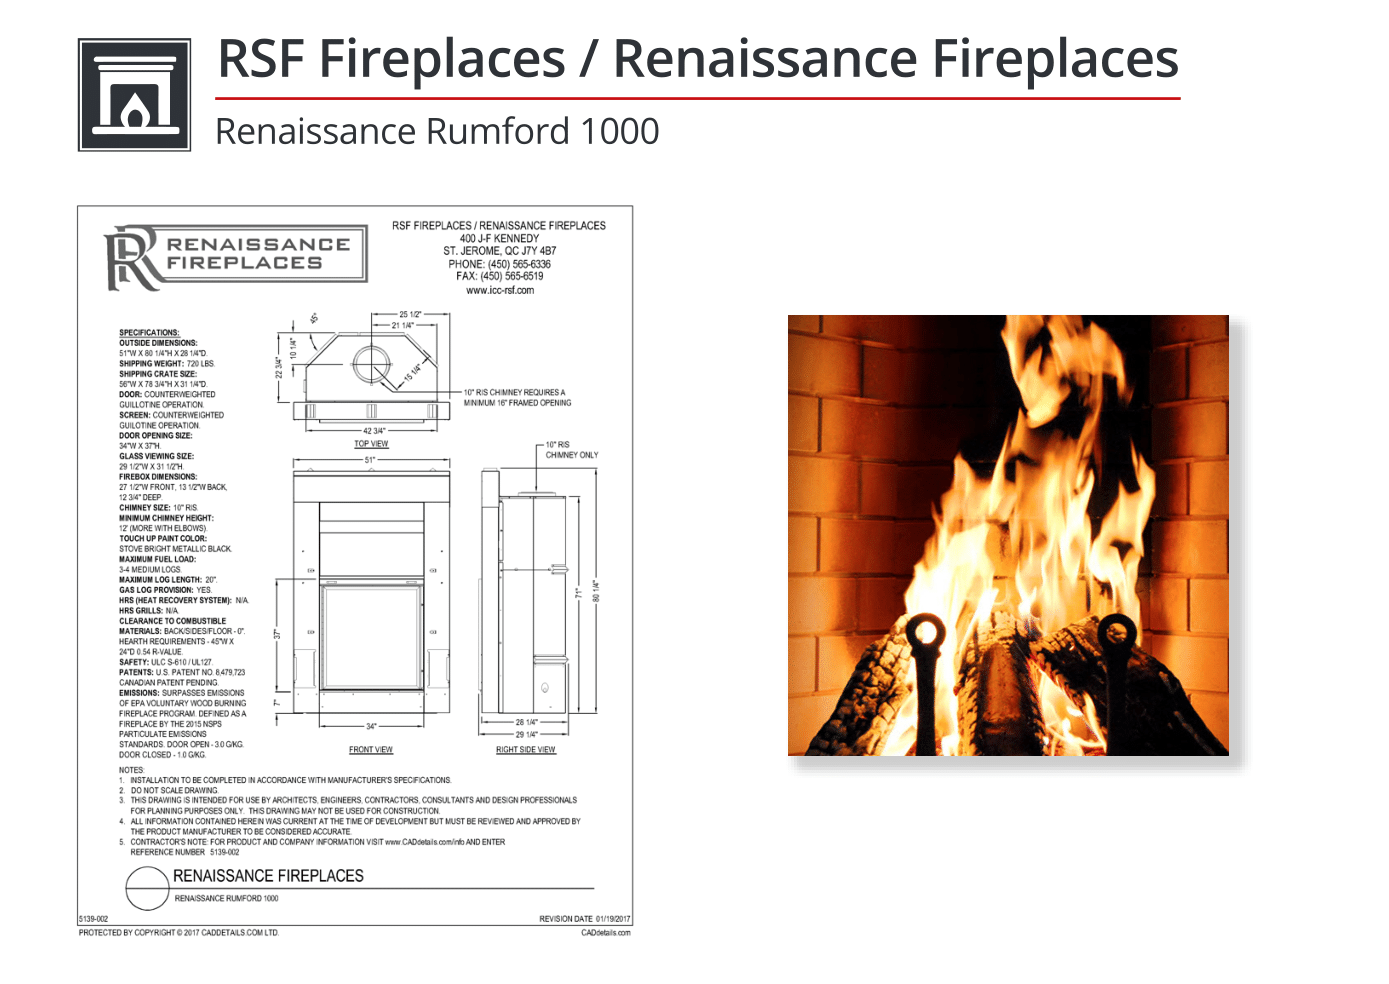 RSF-Fireplaces-Renaissance-Rumford-Fireplaces-CADdrawing.png